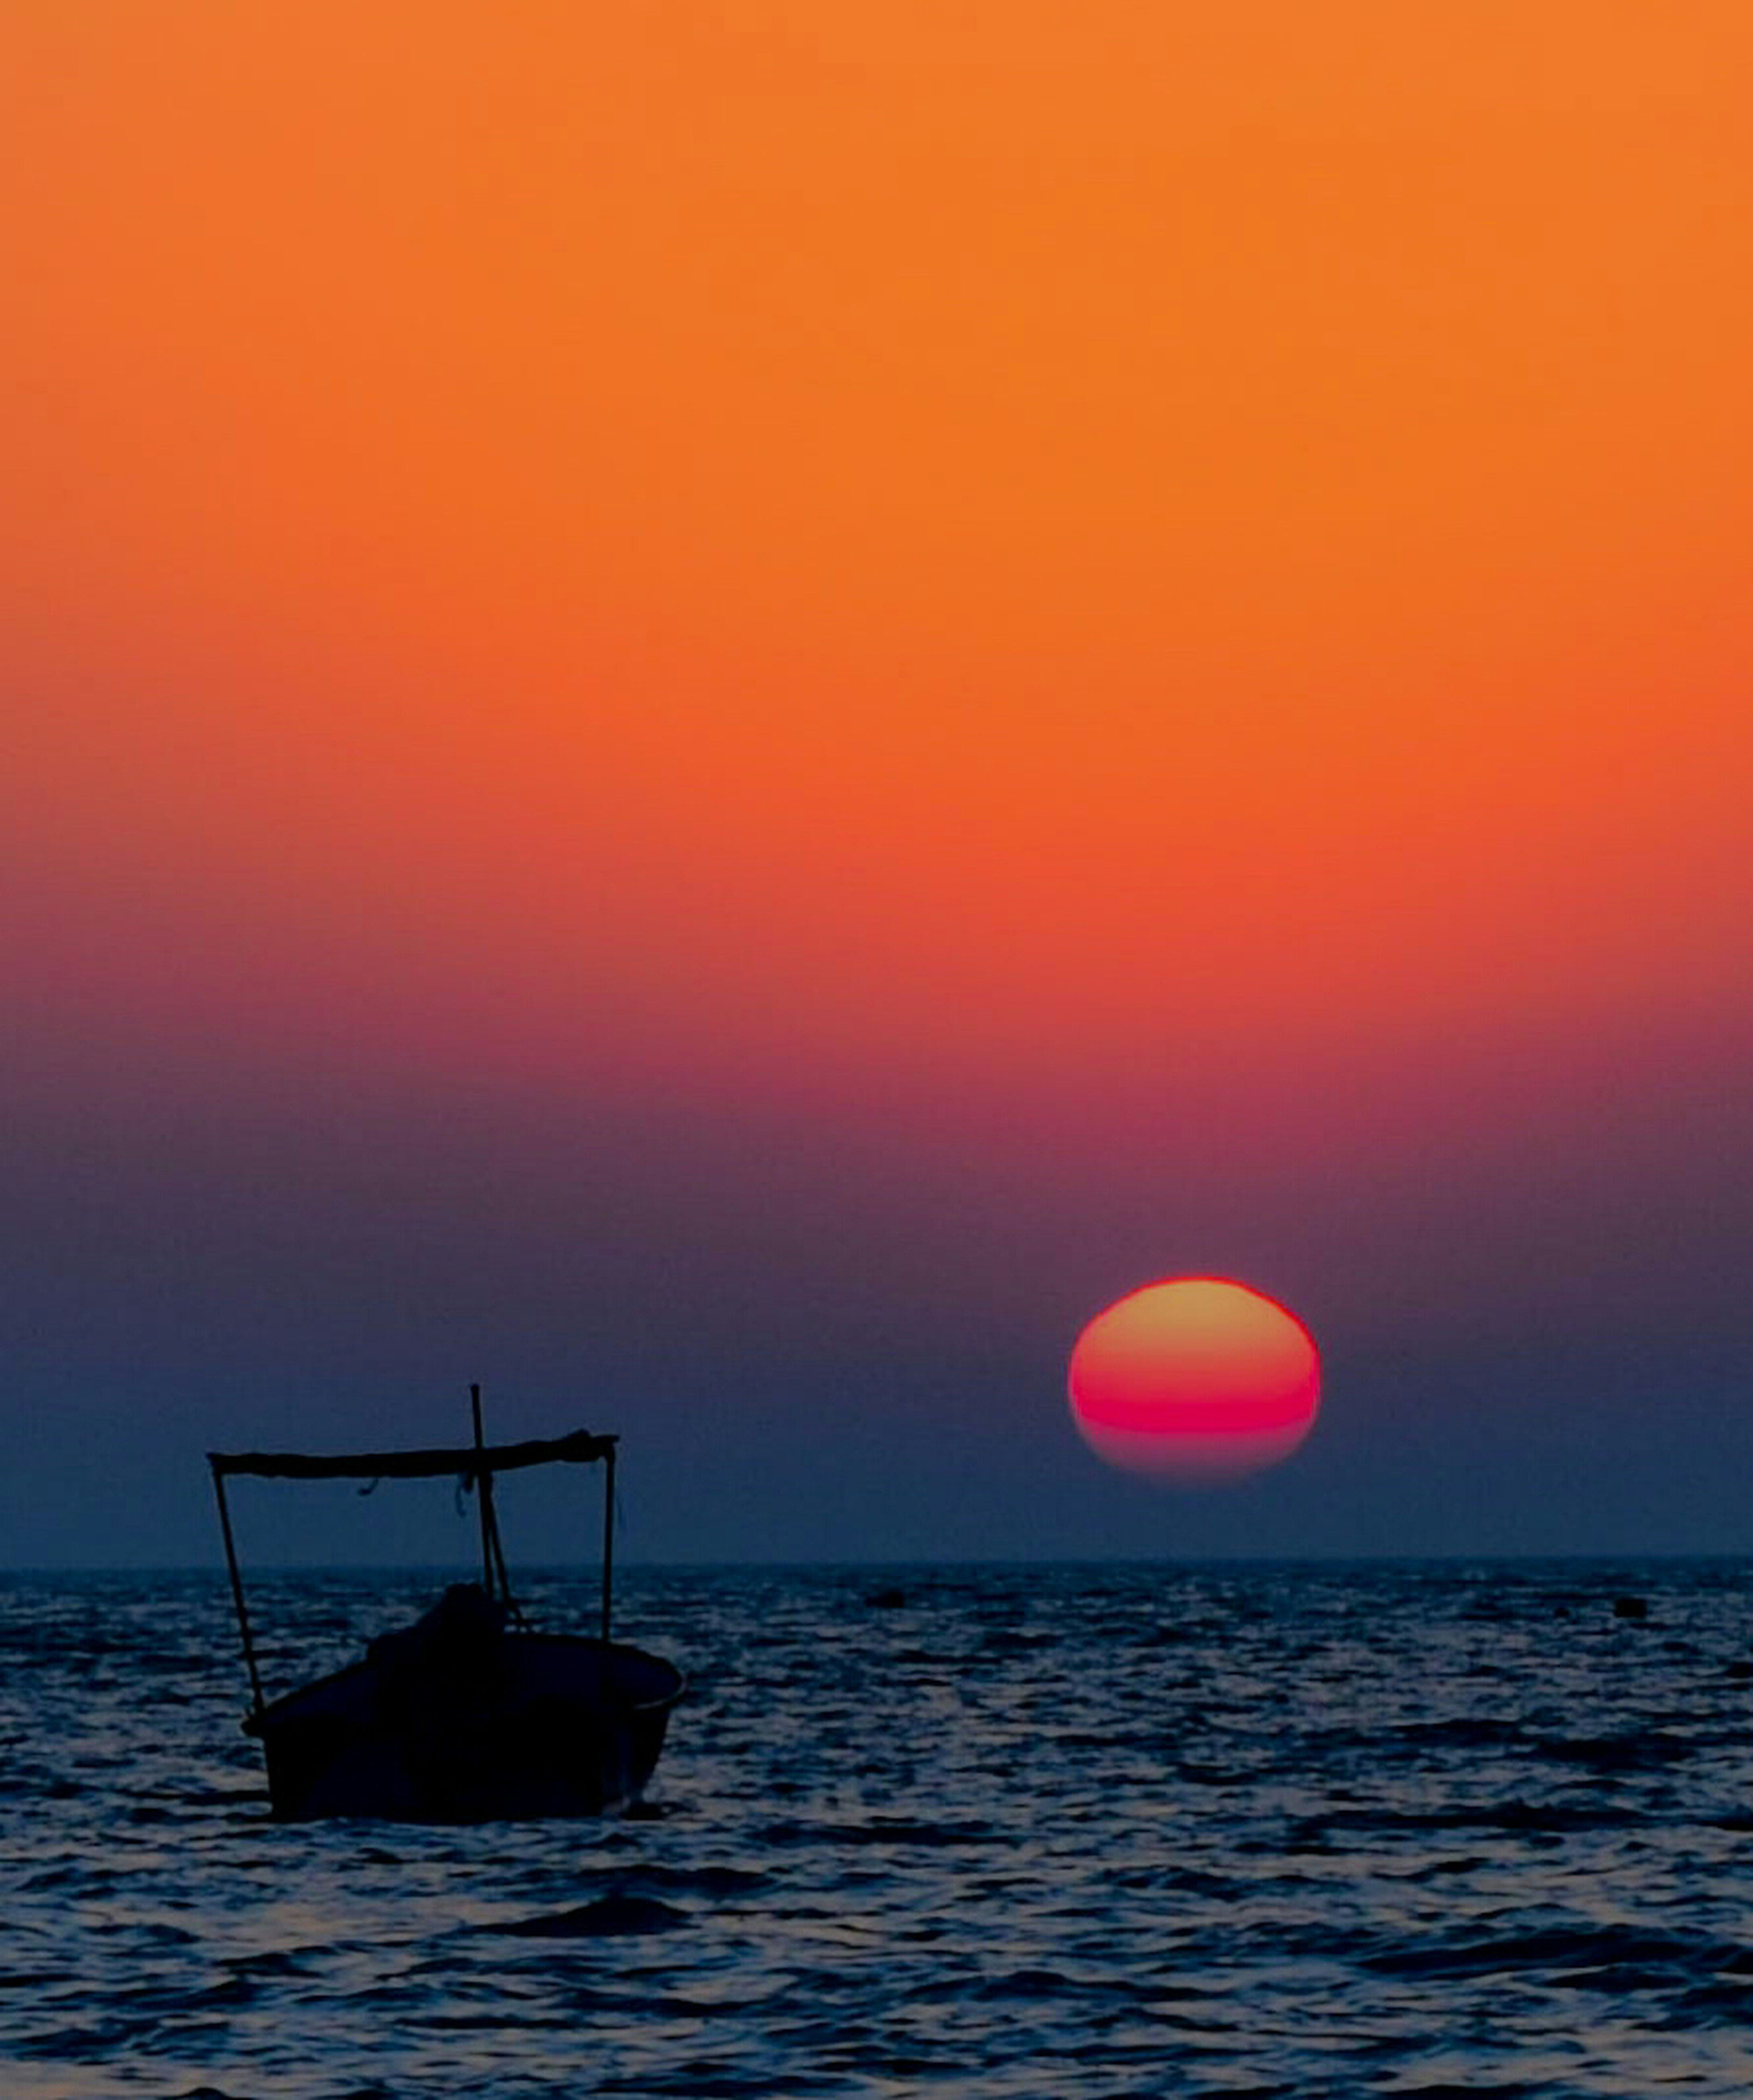 sea, horizon over water, sunset, water, sun, scenics, tranquil scene, boat, nautical vessel, waterfront, orange color, tranquility, transportation, beauty in nature, copy space, idyllic, rippled, seascape, calm, silhouette, mode of transport, ocean, nature, majestic, sky, moody sky, non-urban scene, dramatic sky, outdoors, atmospheric mood, atmosphere, colorful, journey, vibrant color, romantic sky